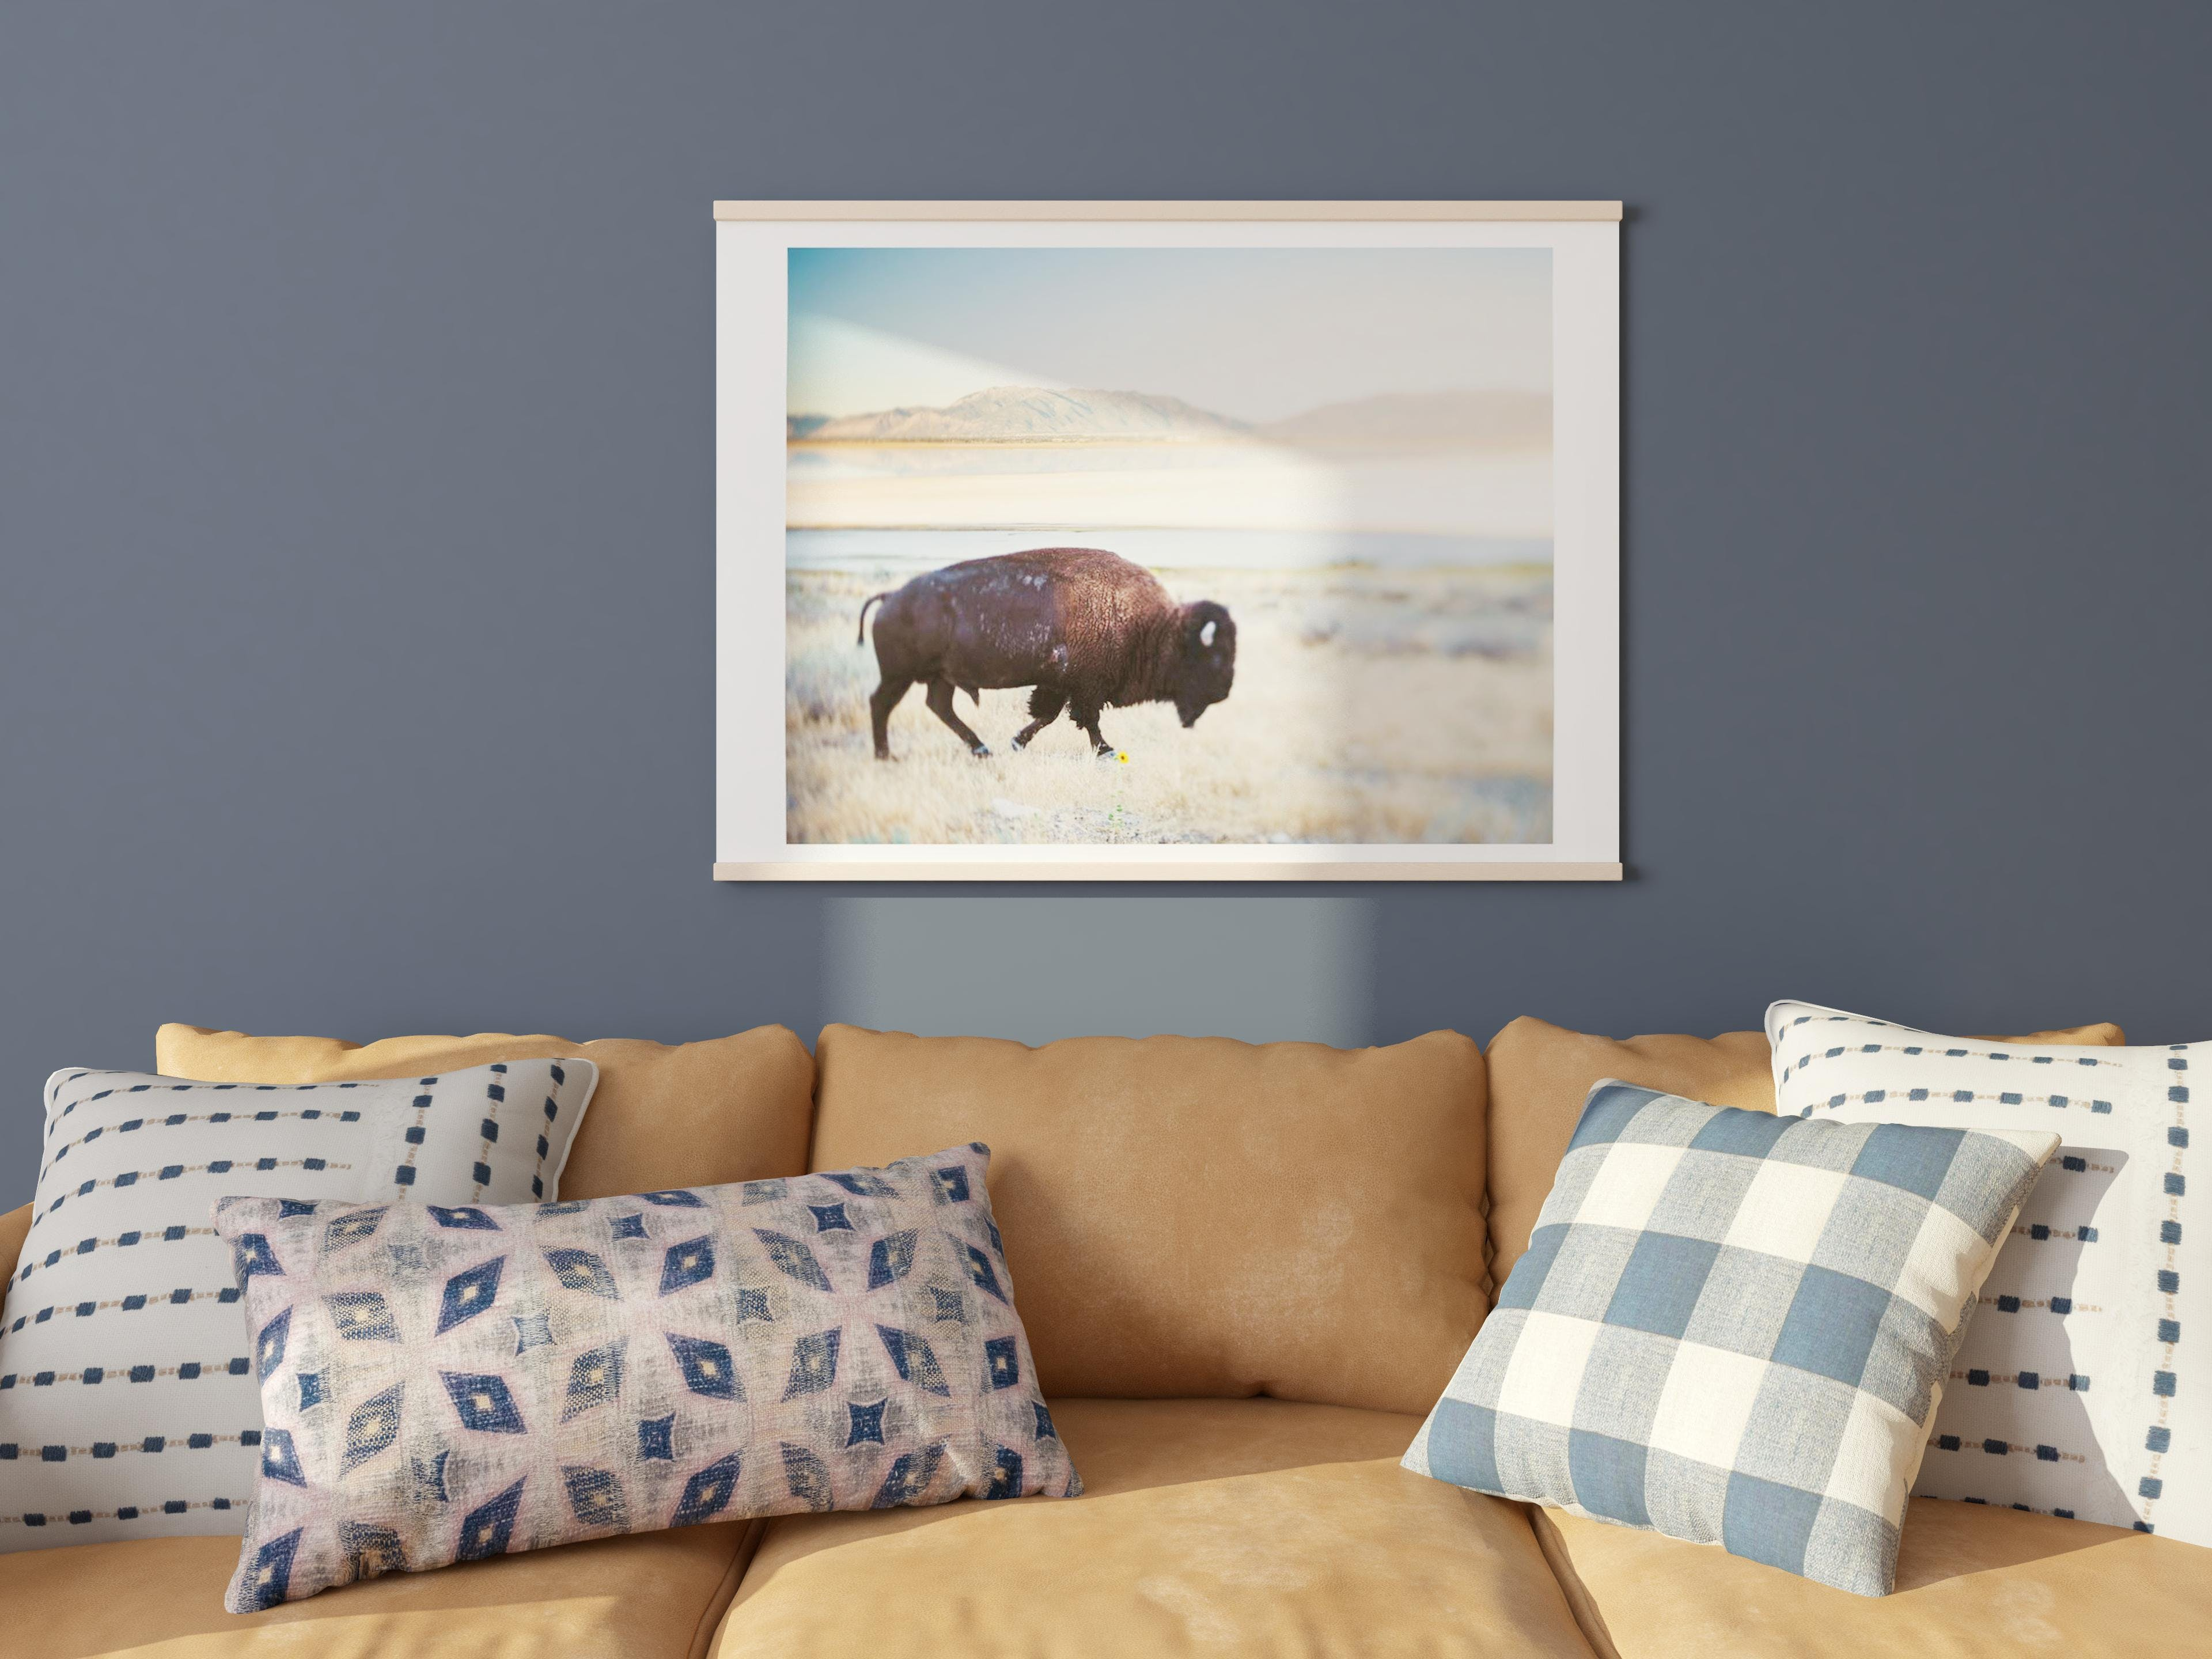 Eclectic And Cool Pillows And Wall Art Duo